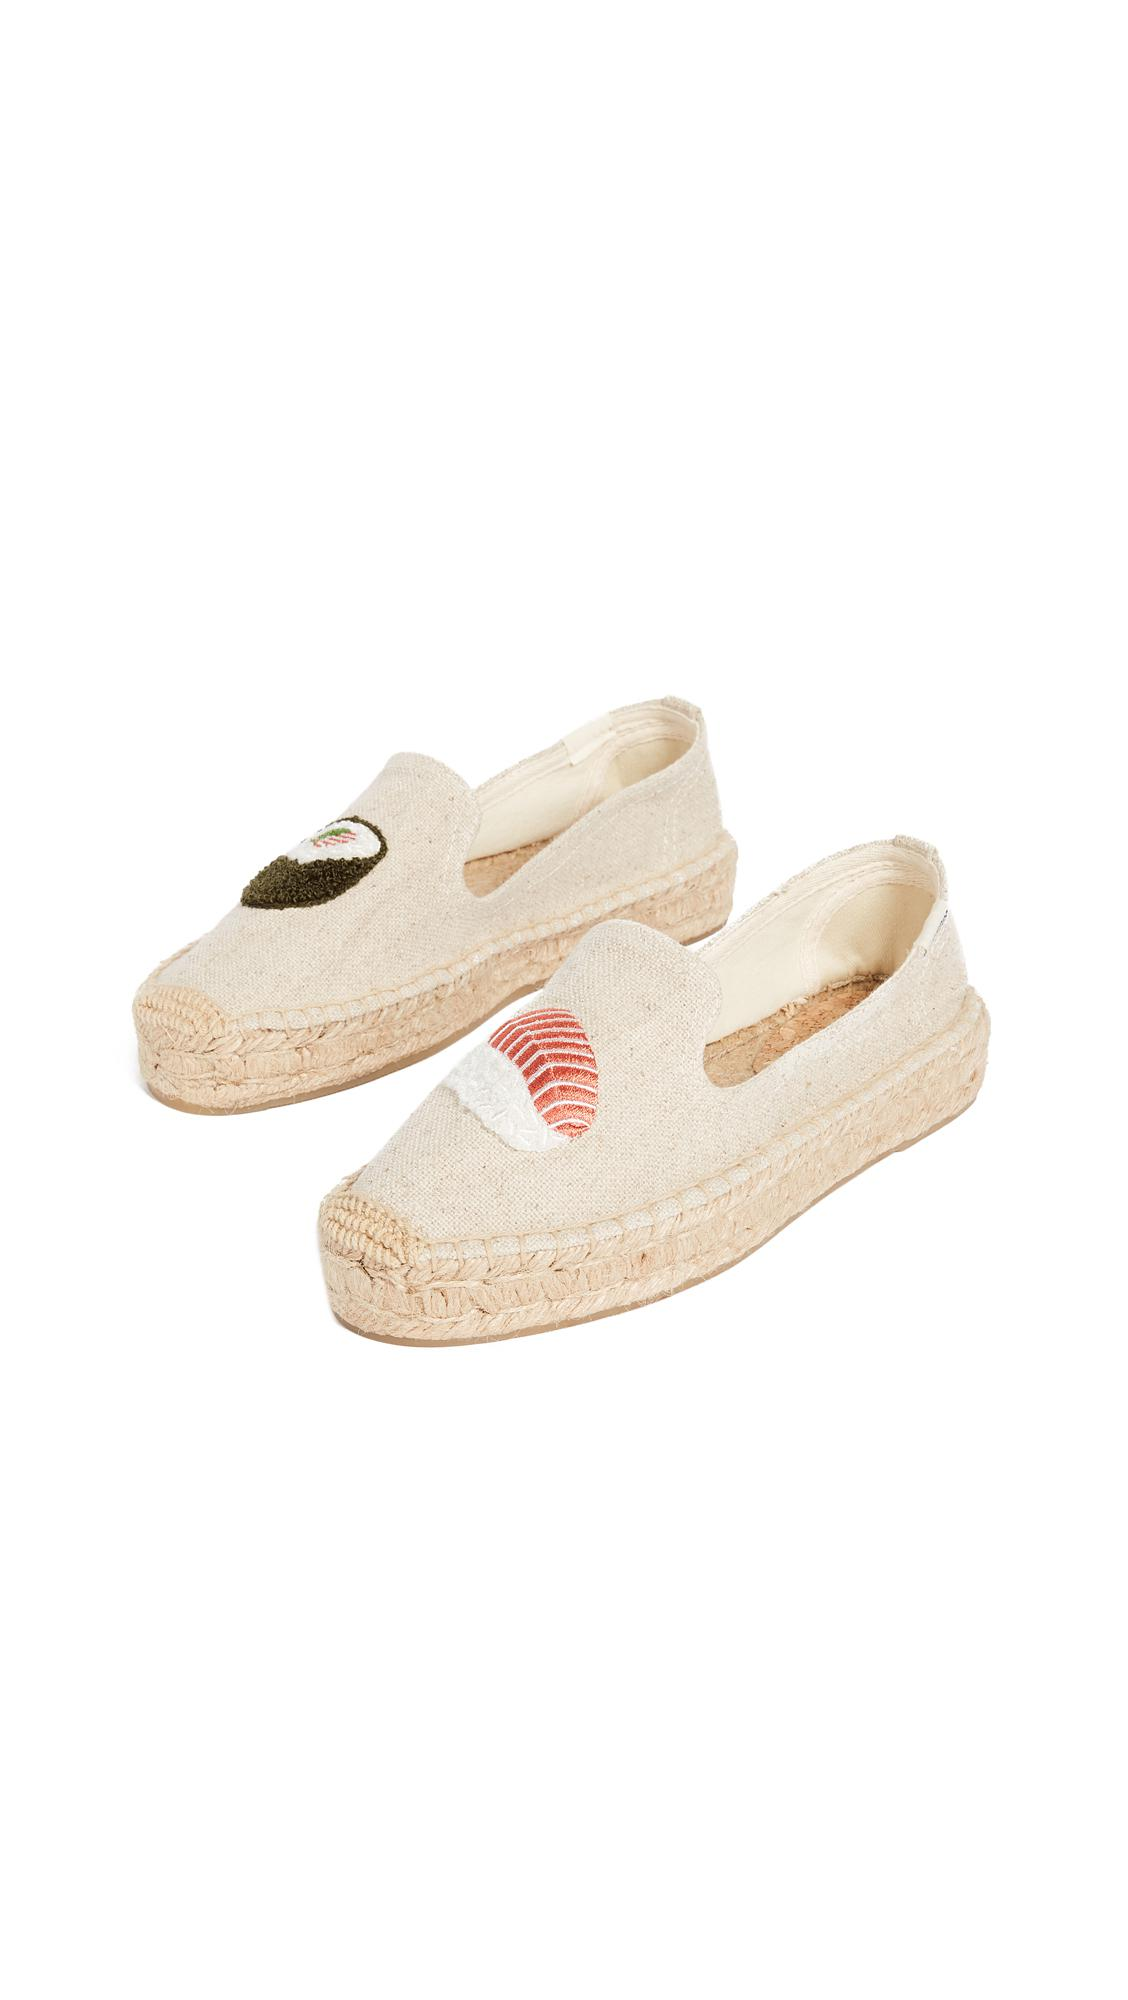 3ba916faa19a Soludos Sushi Platform Smoking Slippers in Natural - Lyst